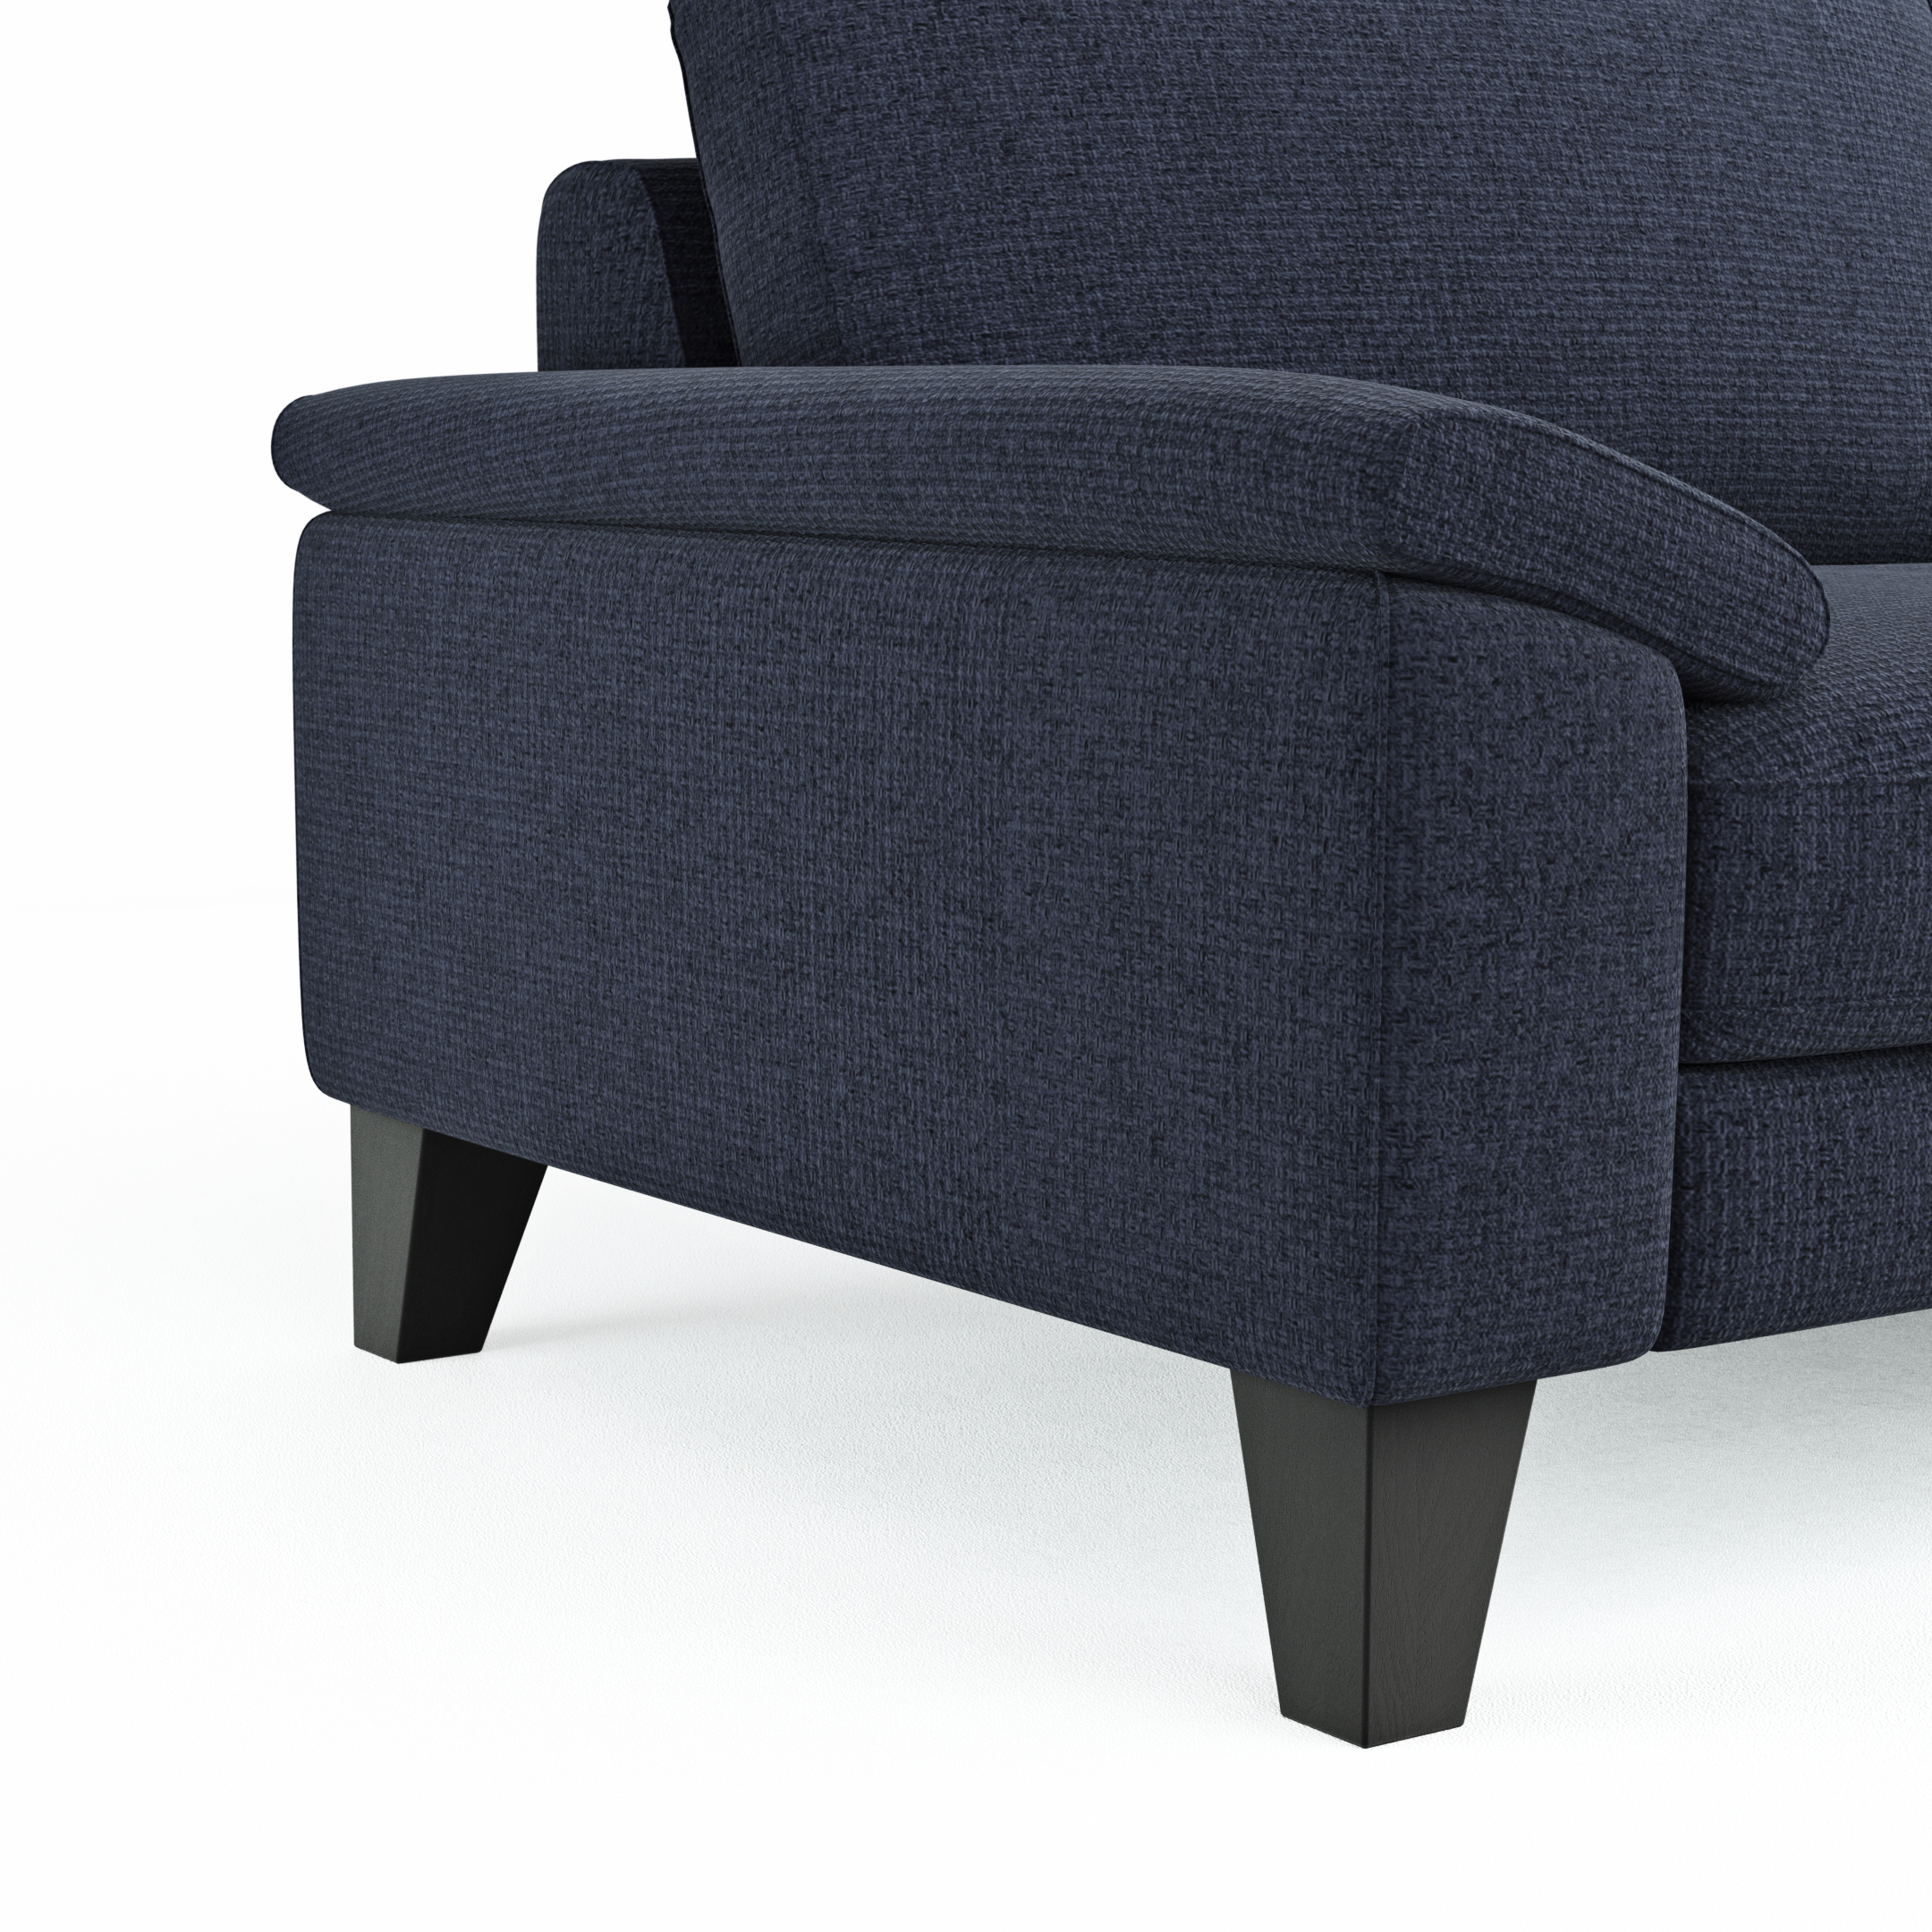 Global Family 3 Sitzer Sofa Oviedo detailbild 2 102294 | Homepoet